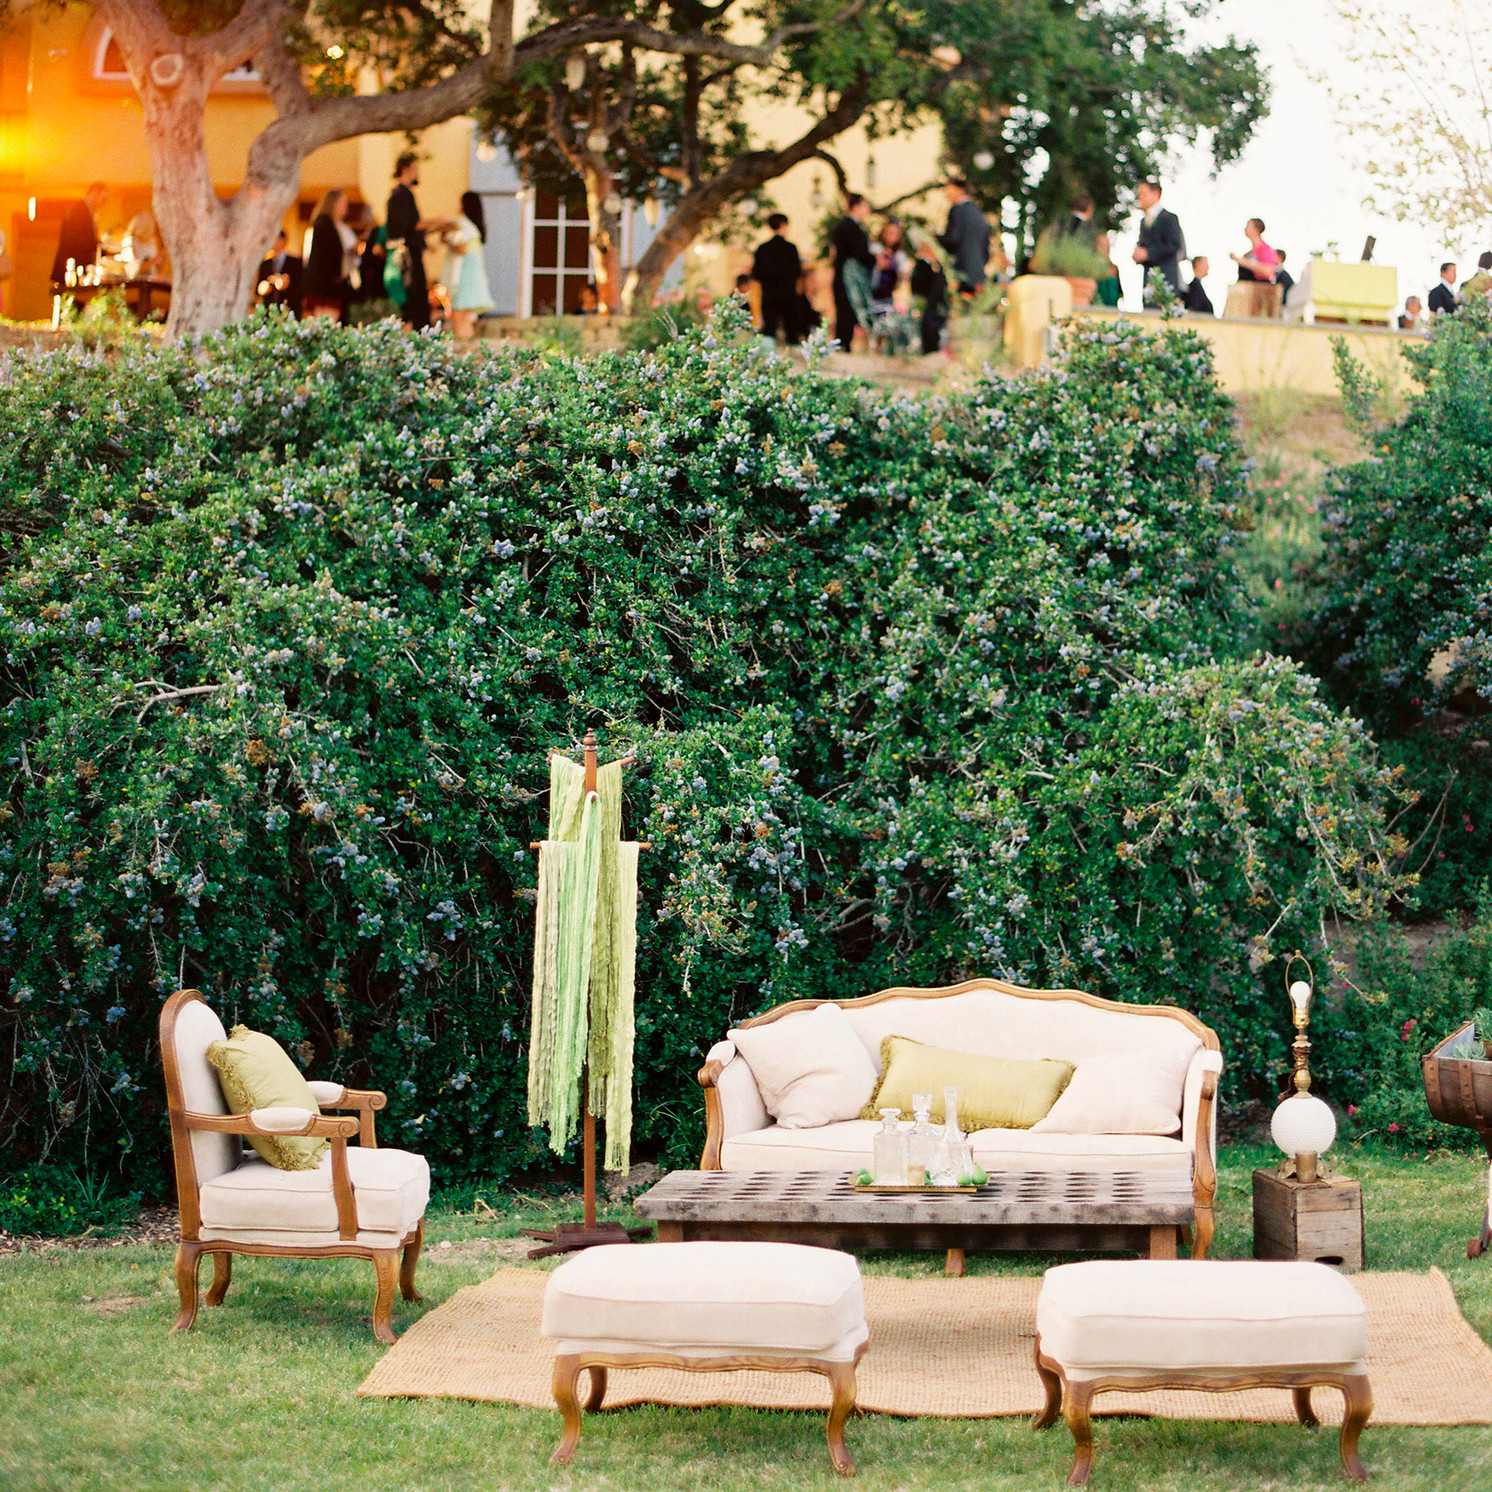 Top 50 Real Wedding Ideas To Steal